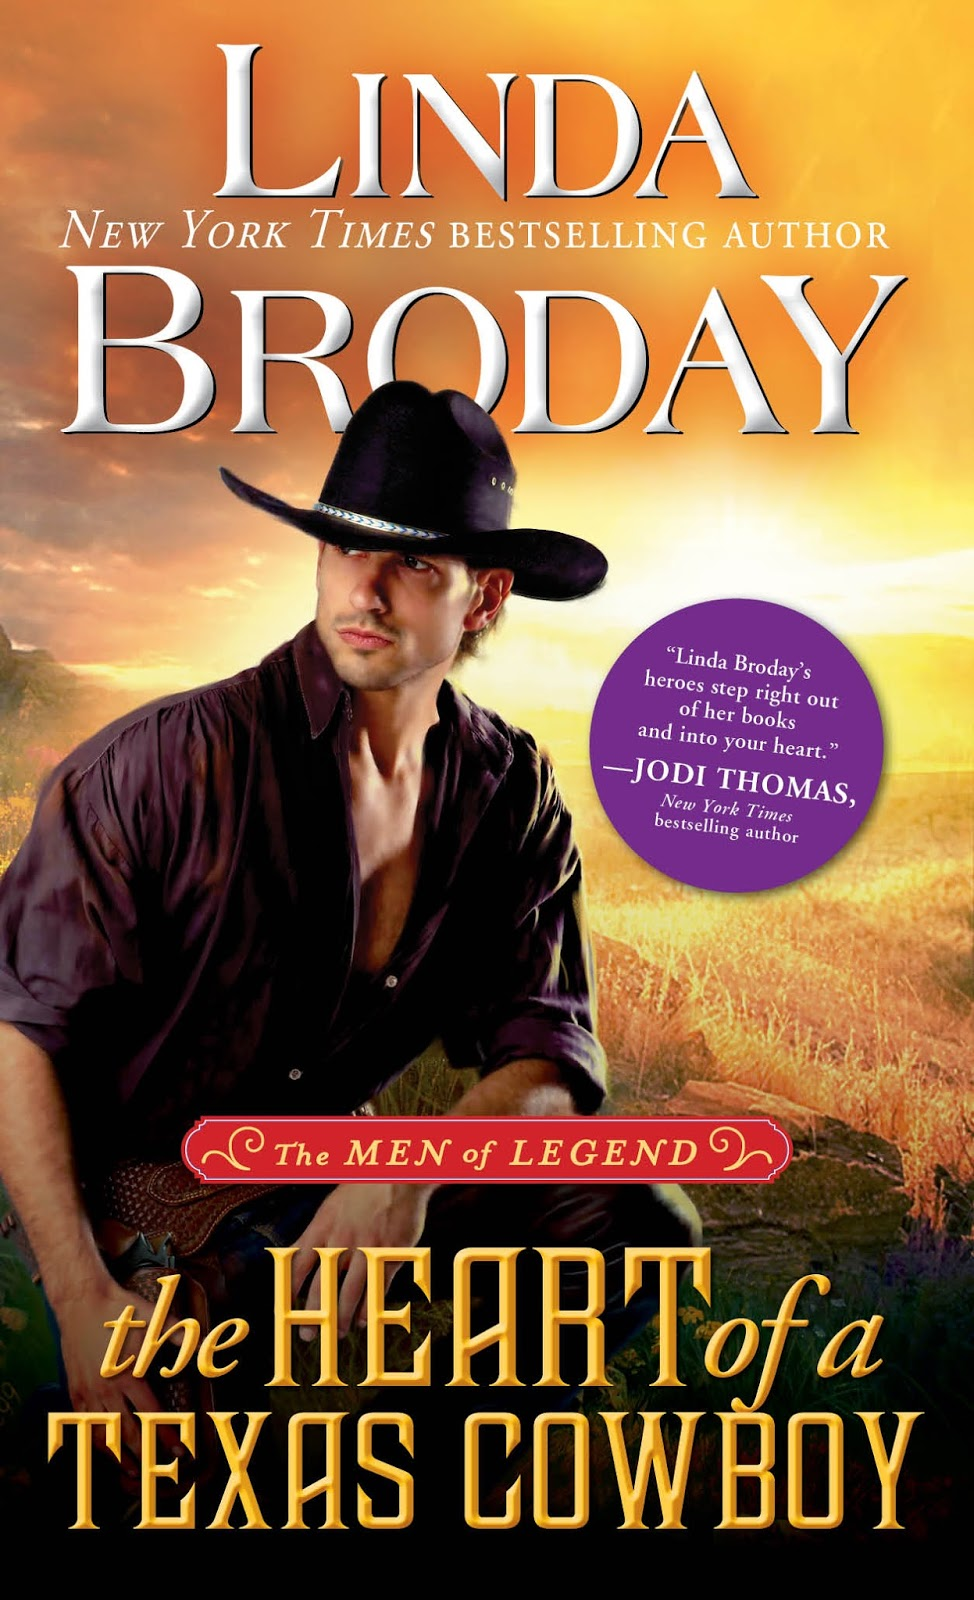 The Urban Myth of the City Girl and the Country Cowboy